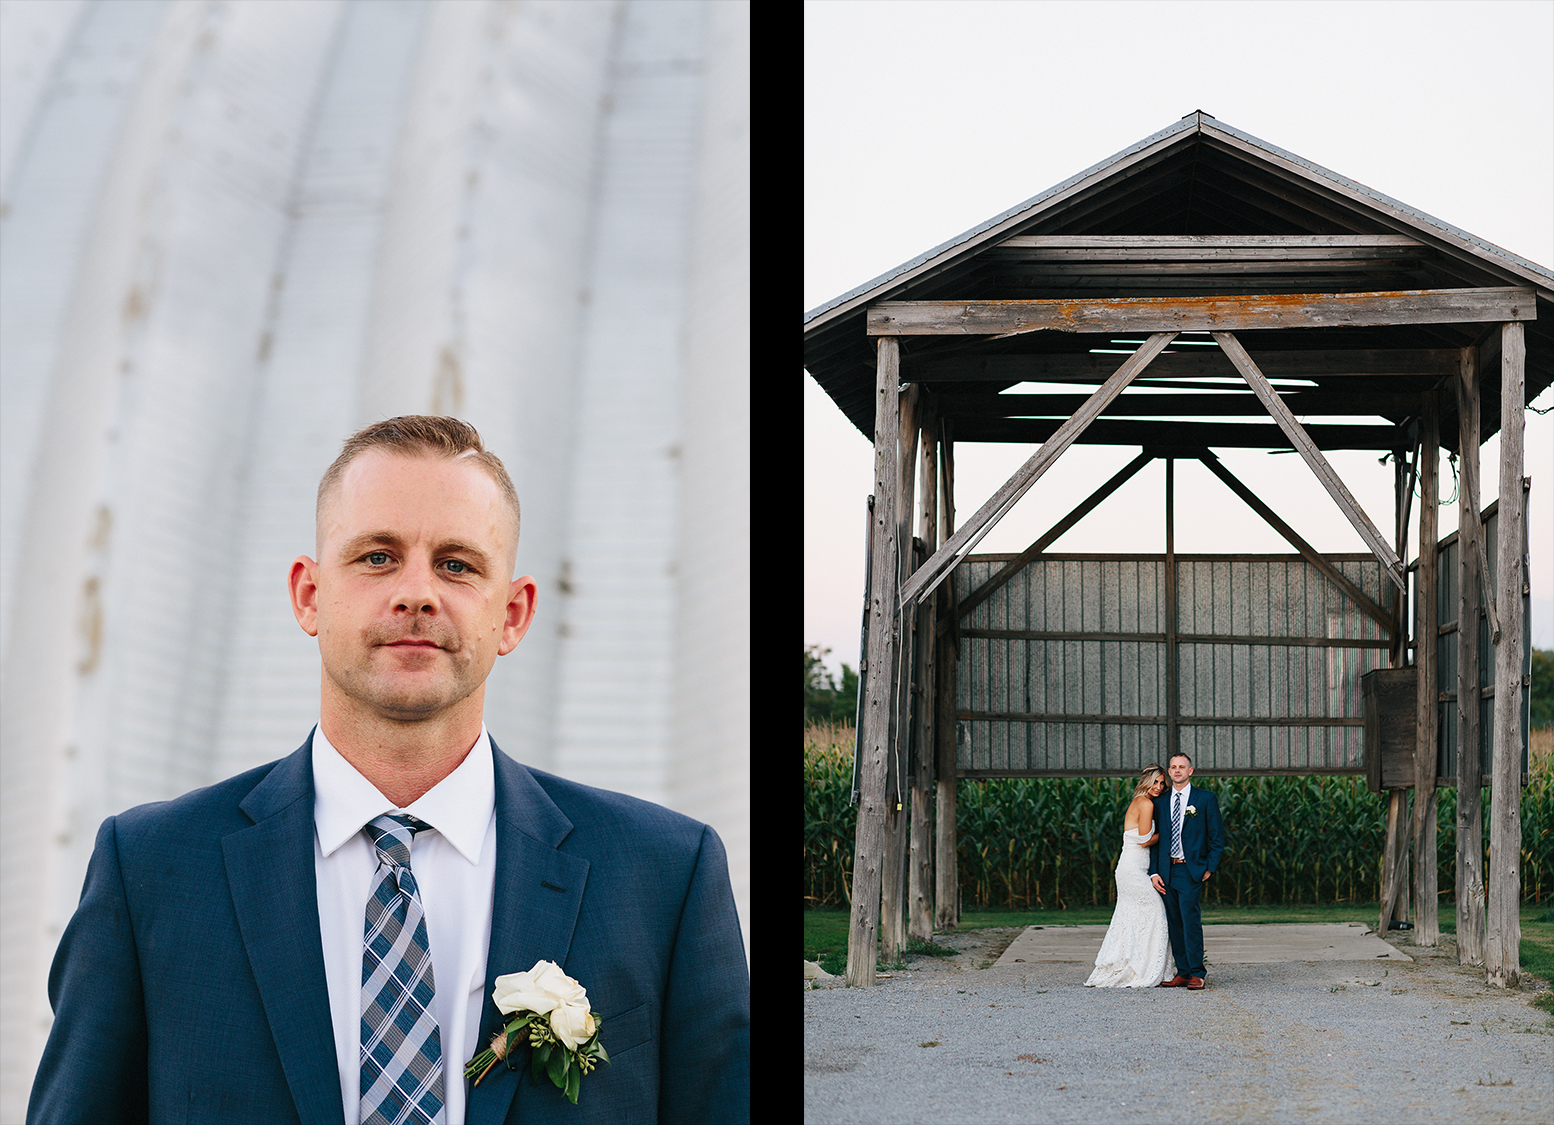 8-Documentary-Wedding-Photographers-in-Toronto-Candid-Natural-Dowswell-Barn-Wedding-Rustic-GTA-Muskoka-Farm-romantic-barn-golden-hour-sunset-portraits-of-groom-simple.jpg